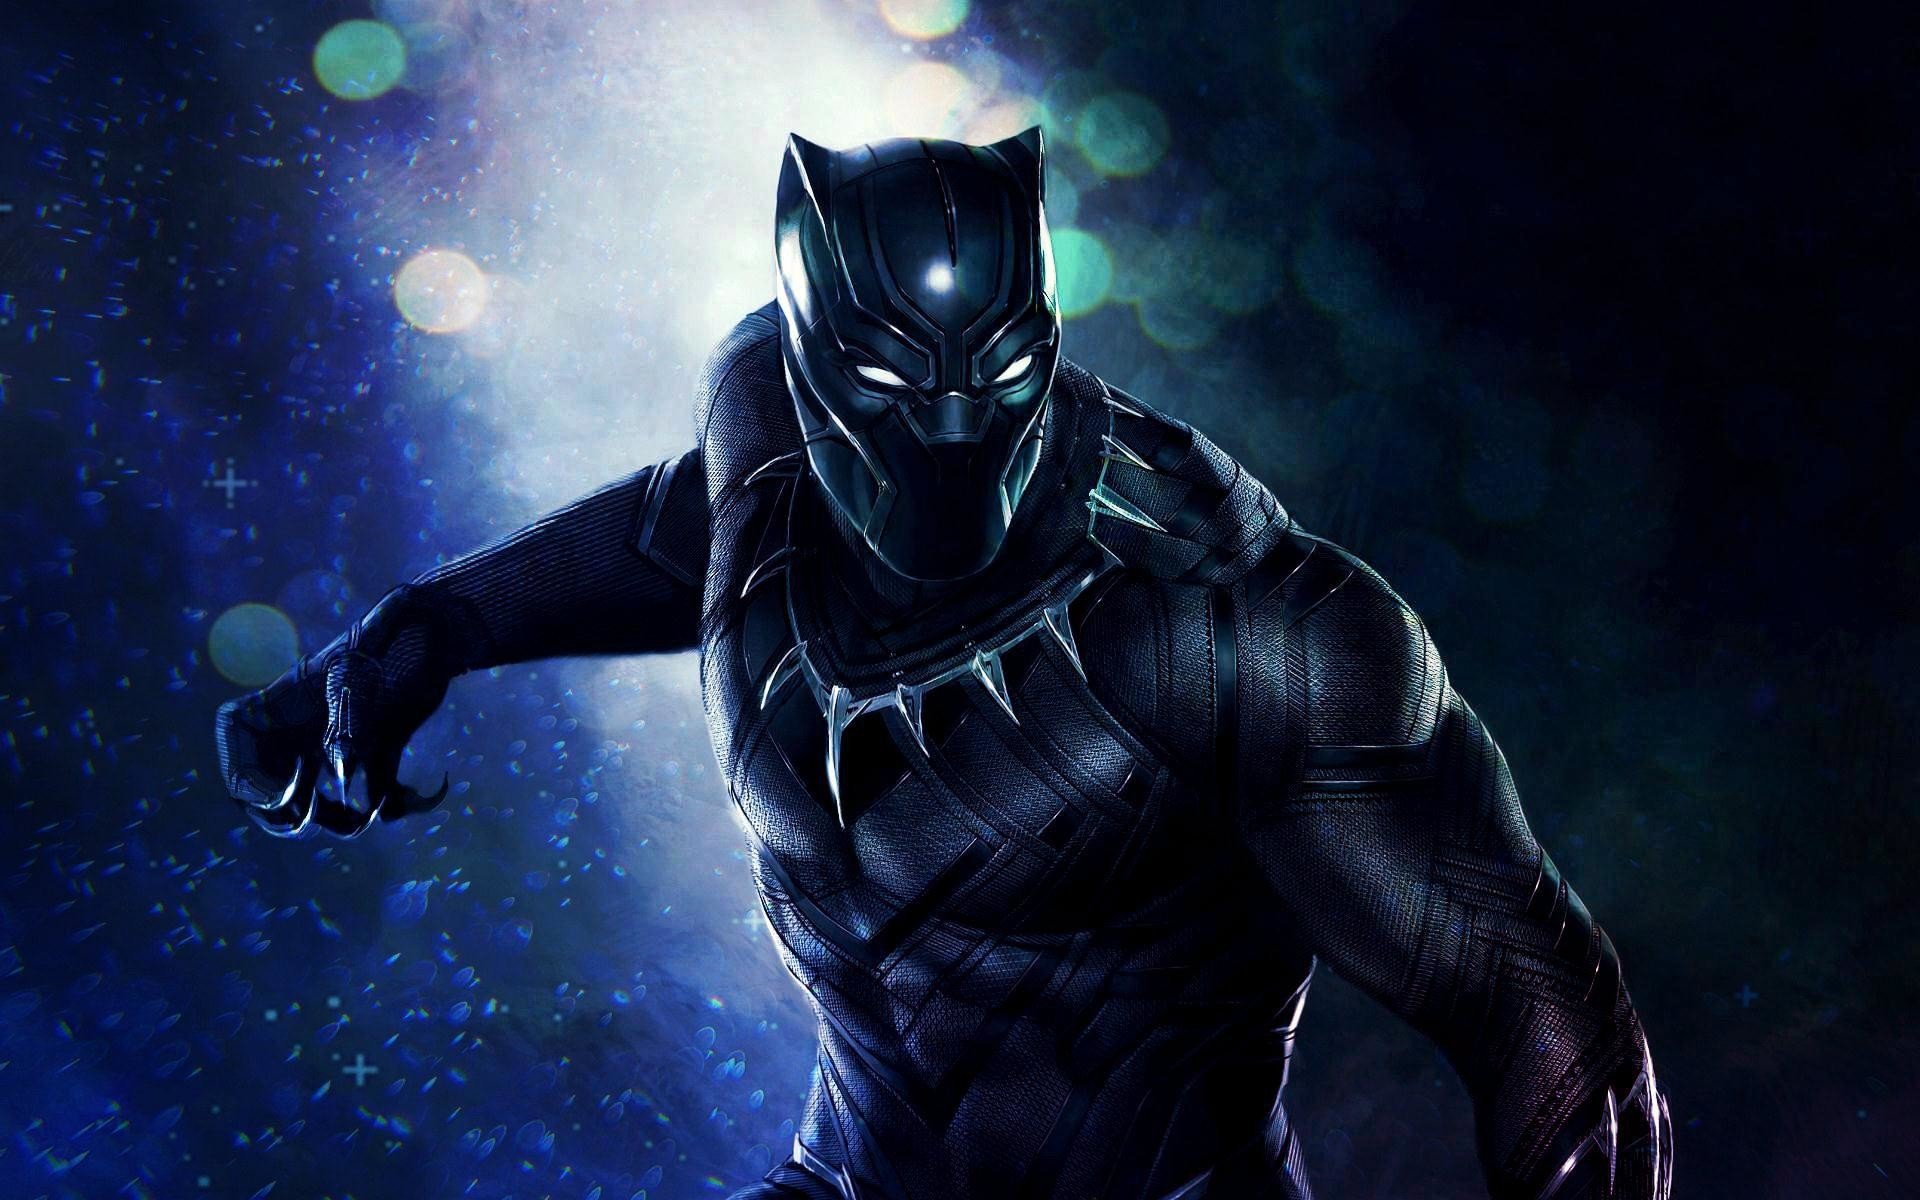 1920x1200 Black Panther 2017 Movie Desktop HD Wallpaper - Stylish HD Wallpapers